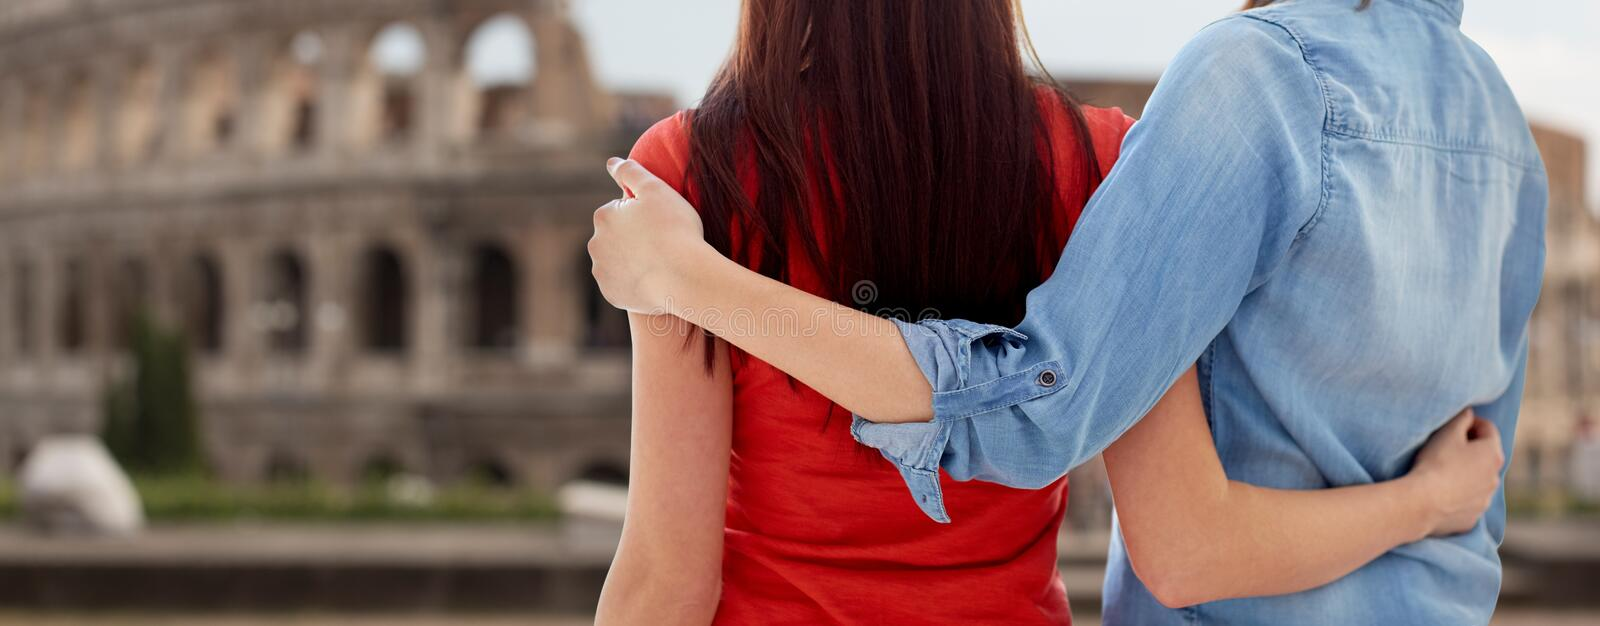 Close up of lesbian couple over coliseum in rome. People, homosexuality, same-sex marriage, travel and gay love concept - close up of happy lesbian couple stock photography